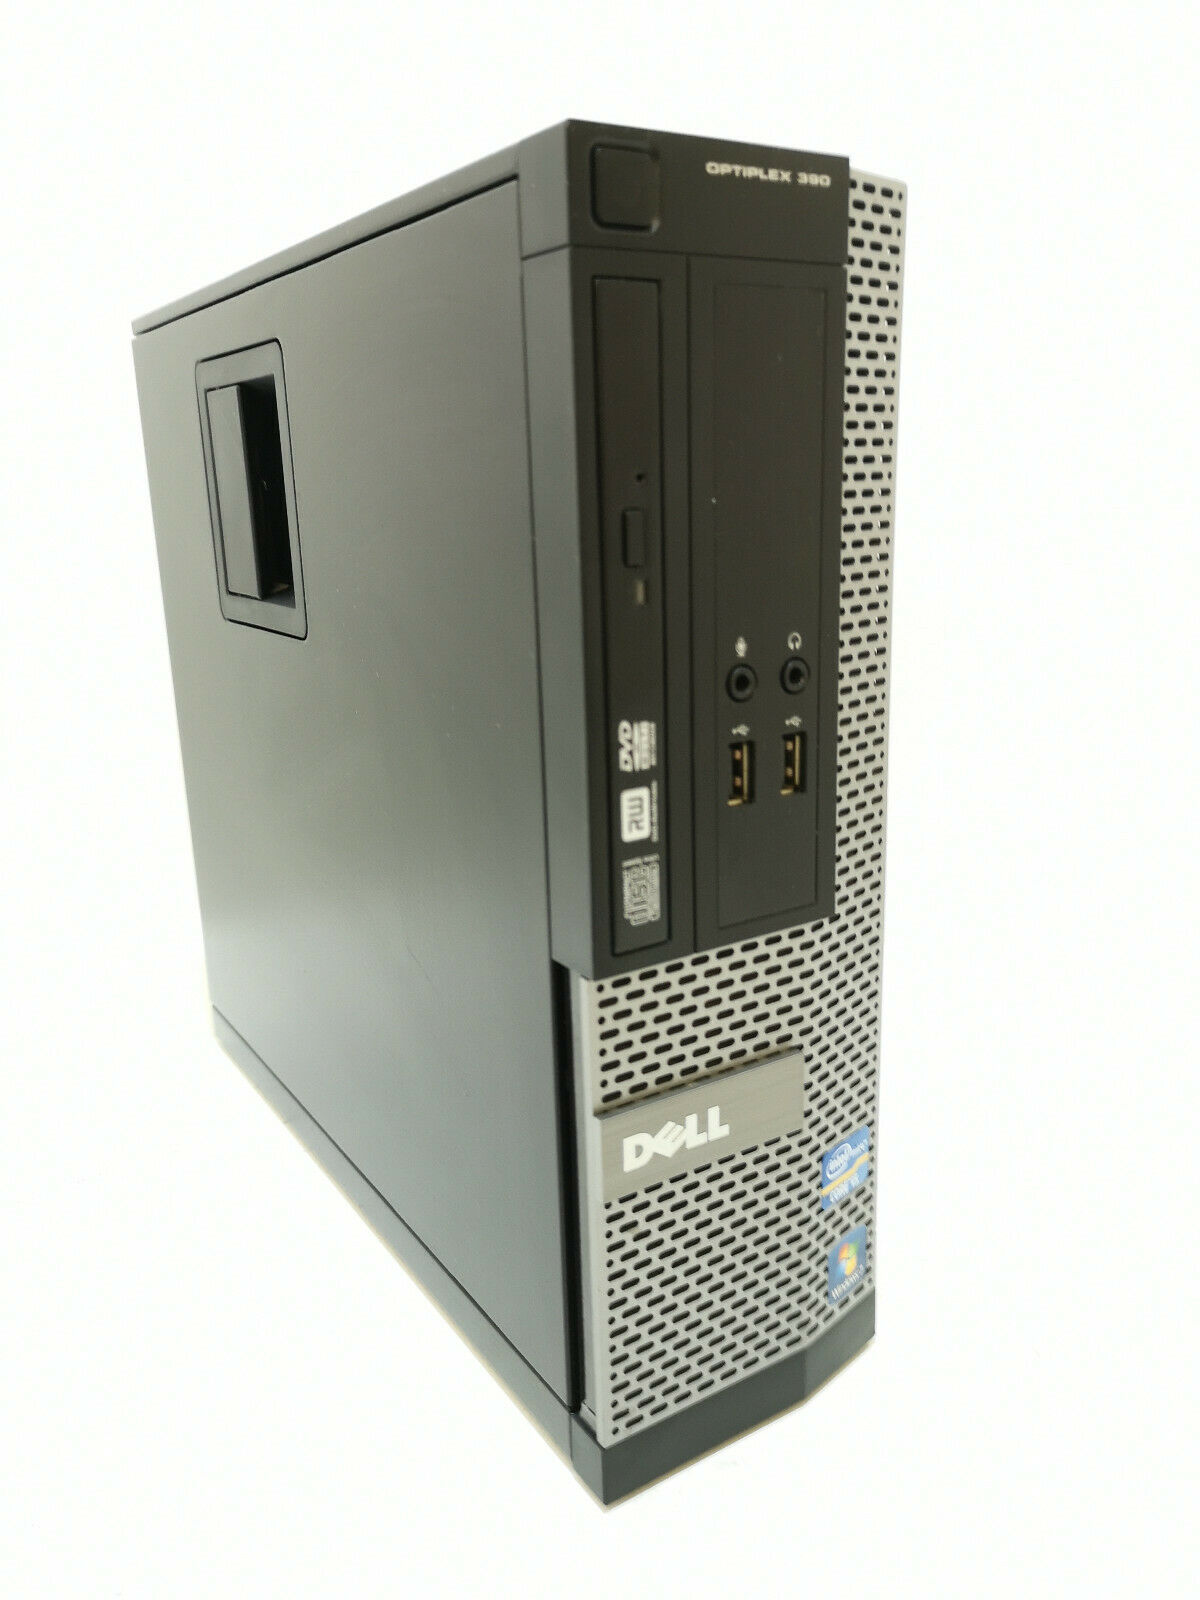 Stone System 211 Refurbished Desktop PC - 3262